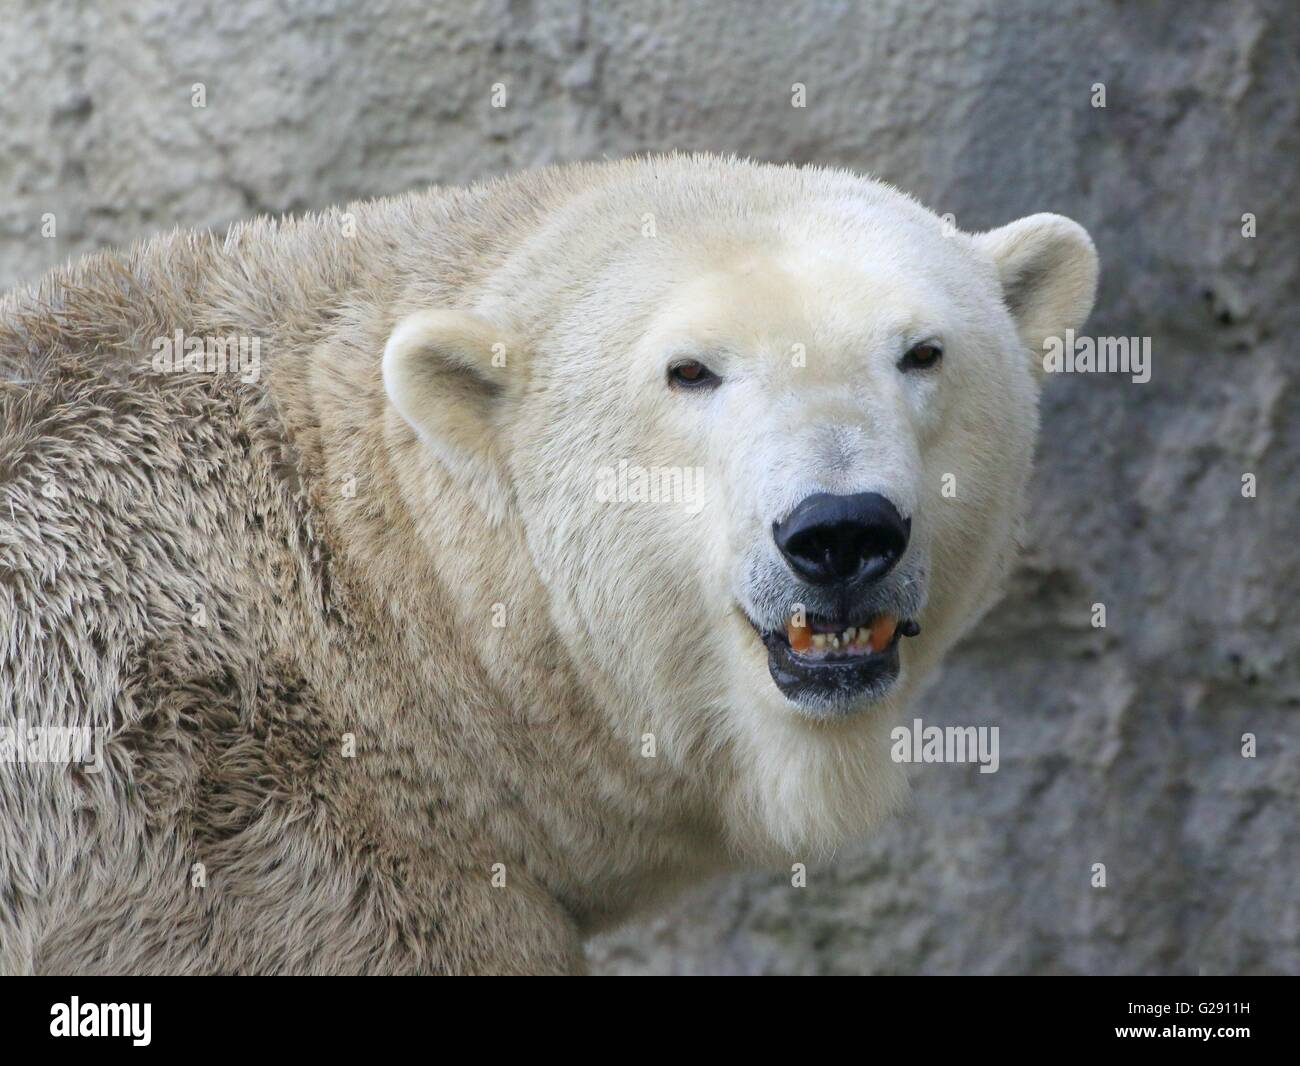 Closeup of the head of a mature male polar bear (Ursus maritimus) snarling and baring teeth, facing the camera - Stock Image